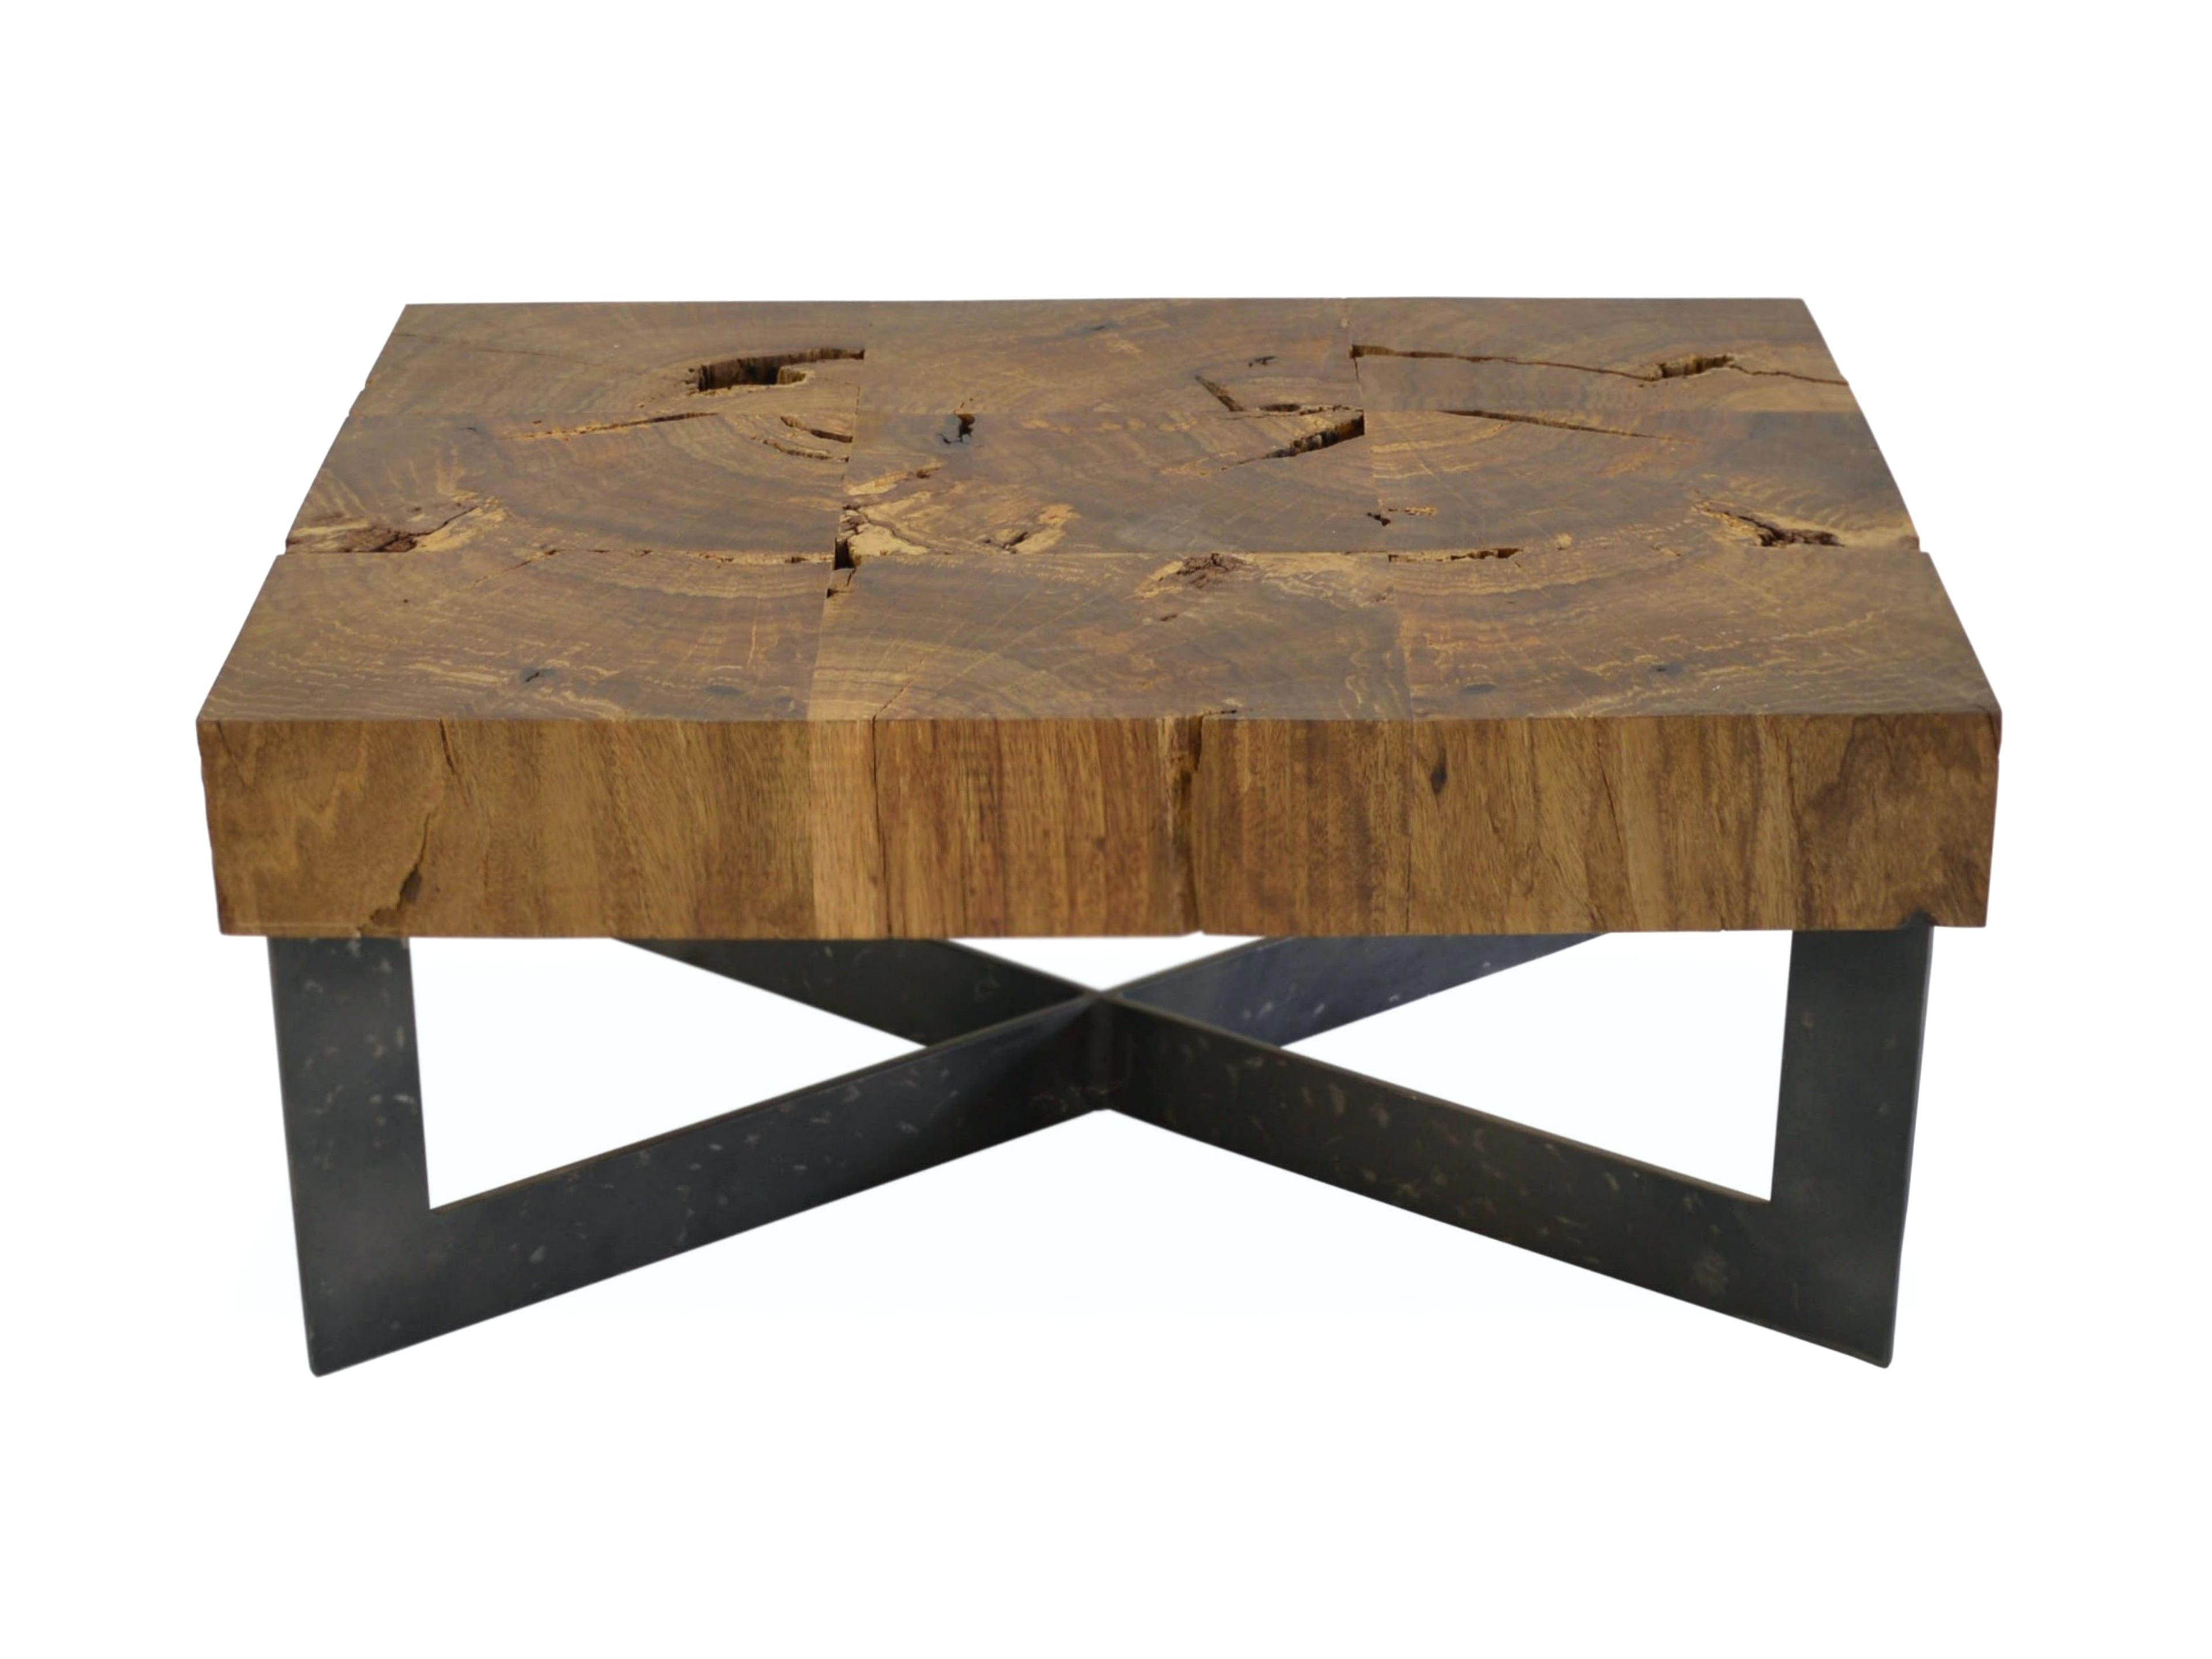 tables weathered end coffee table oversized rustic wood accent small round oak large reclaimed cocktail square tab free topper patterns huge outdoor umbrella target fretwork